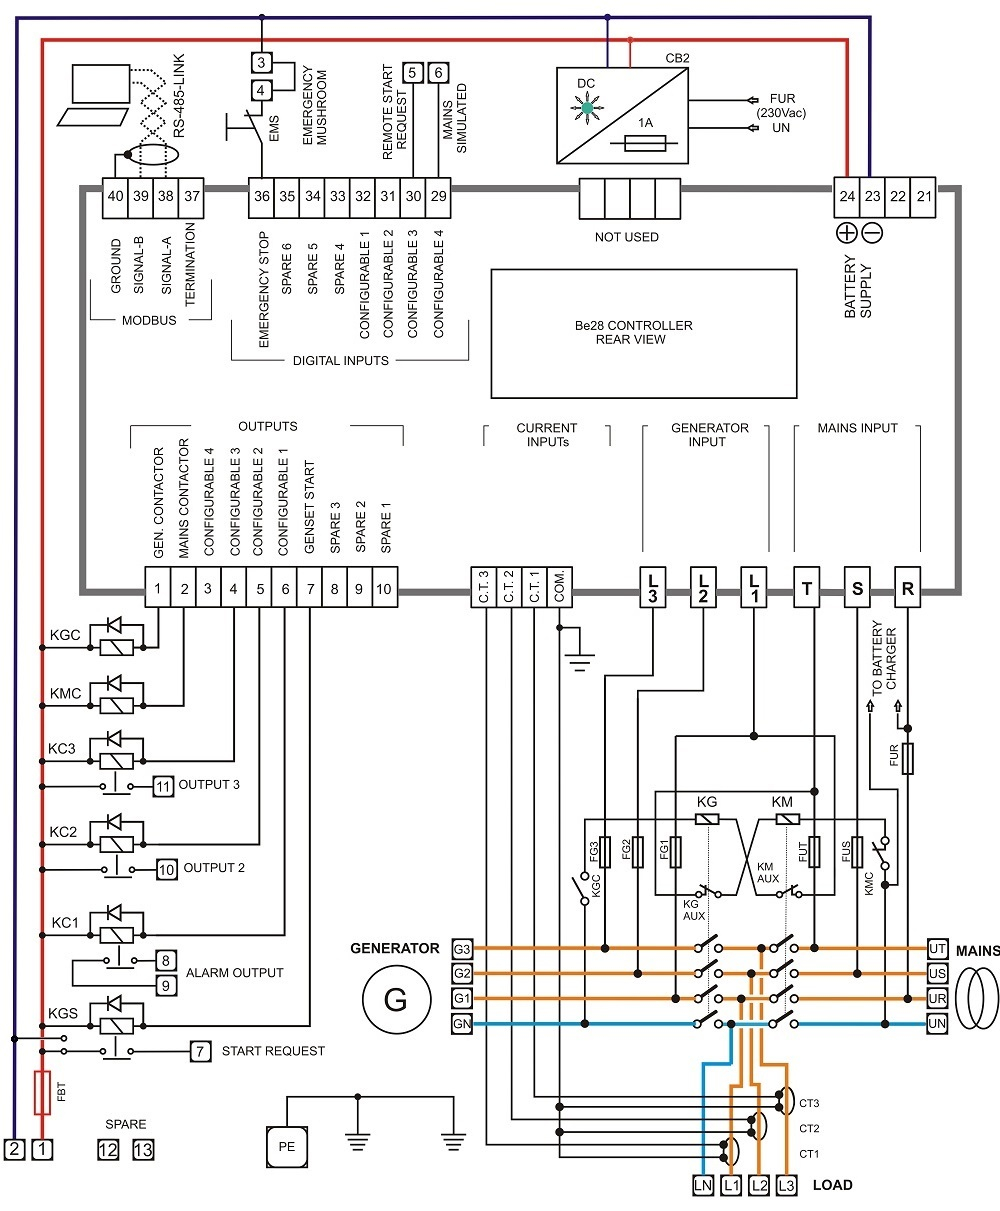 Marvelous Plc Panel Wiring Diagram Pdf Sample Wiring Diagram Sample Letkol Mohammedshrine Wiring Cloud Letkolmohammedshrineorg